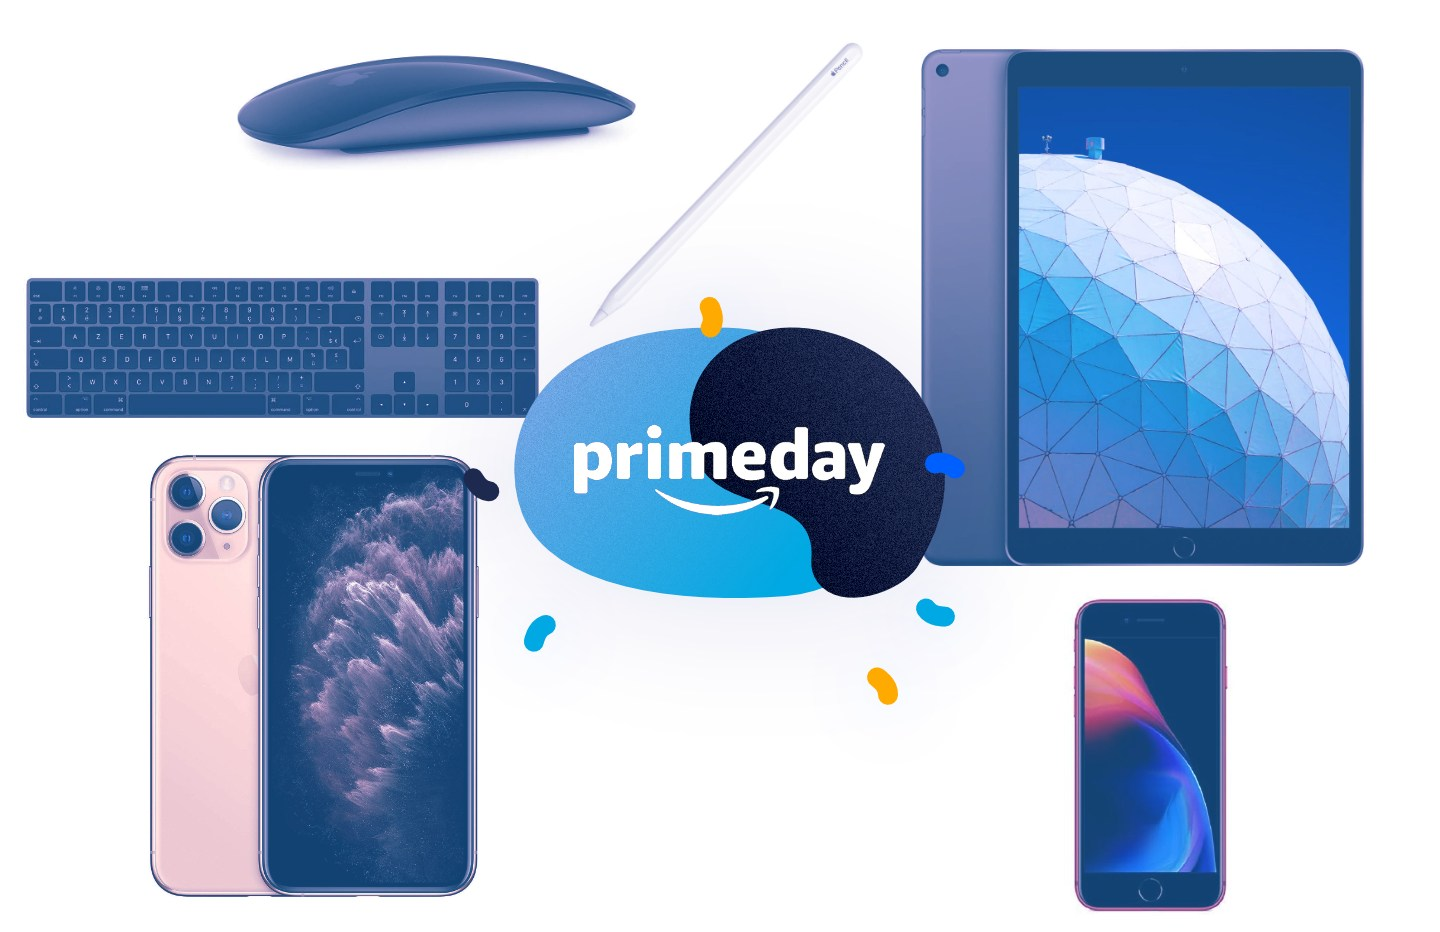 Les accessoires Apple à prix bas pour le Prime Day : AirPods Pro, Apple Pencil, Magic Keyboard, etc.